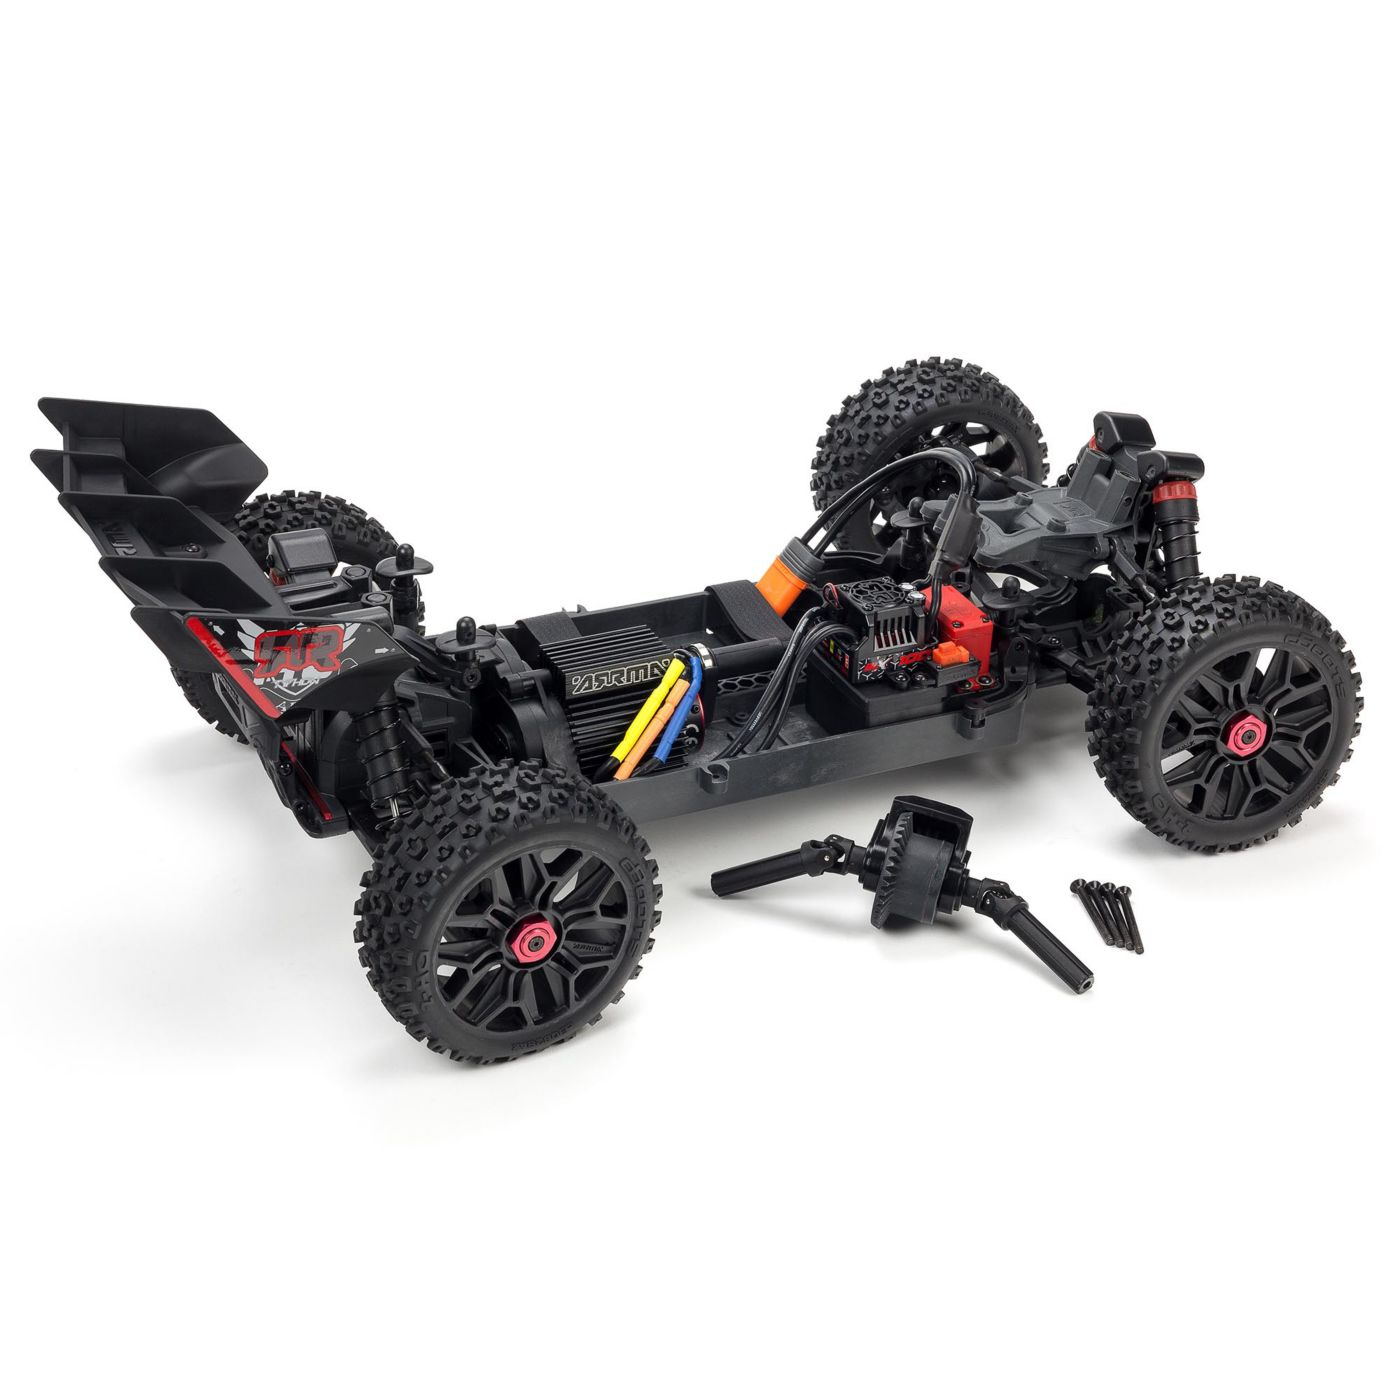 Arrma Typhon 3s Brushless 4wd Buggy rtr 6